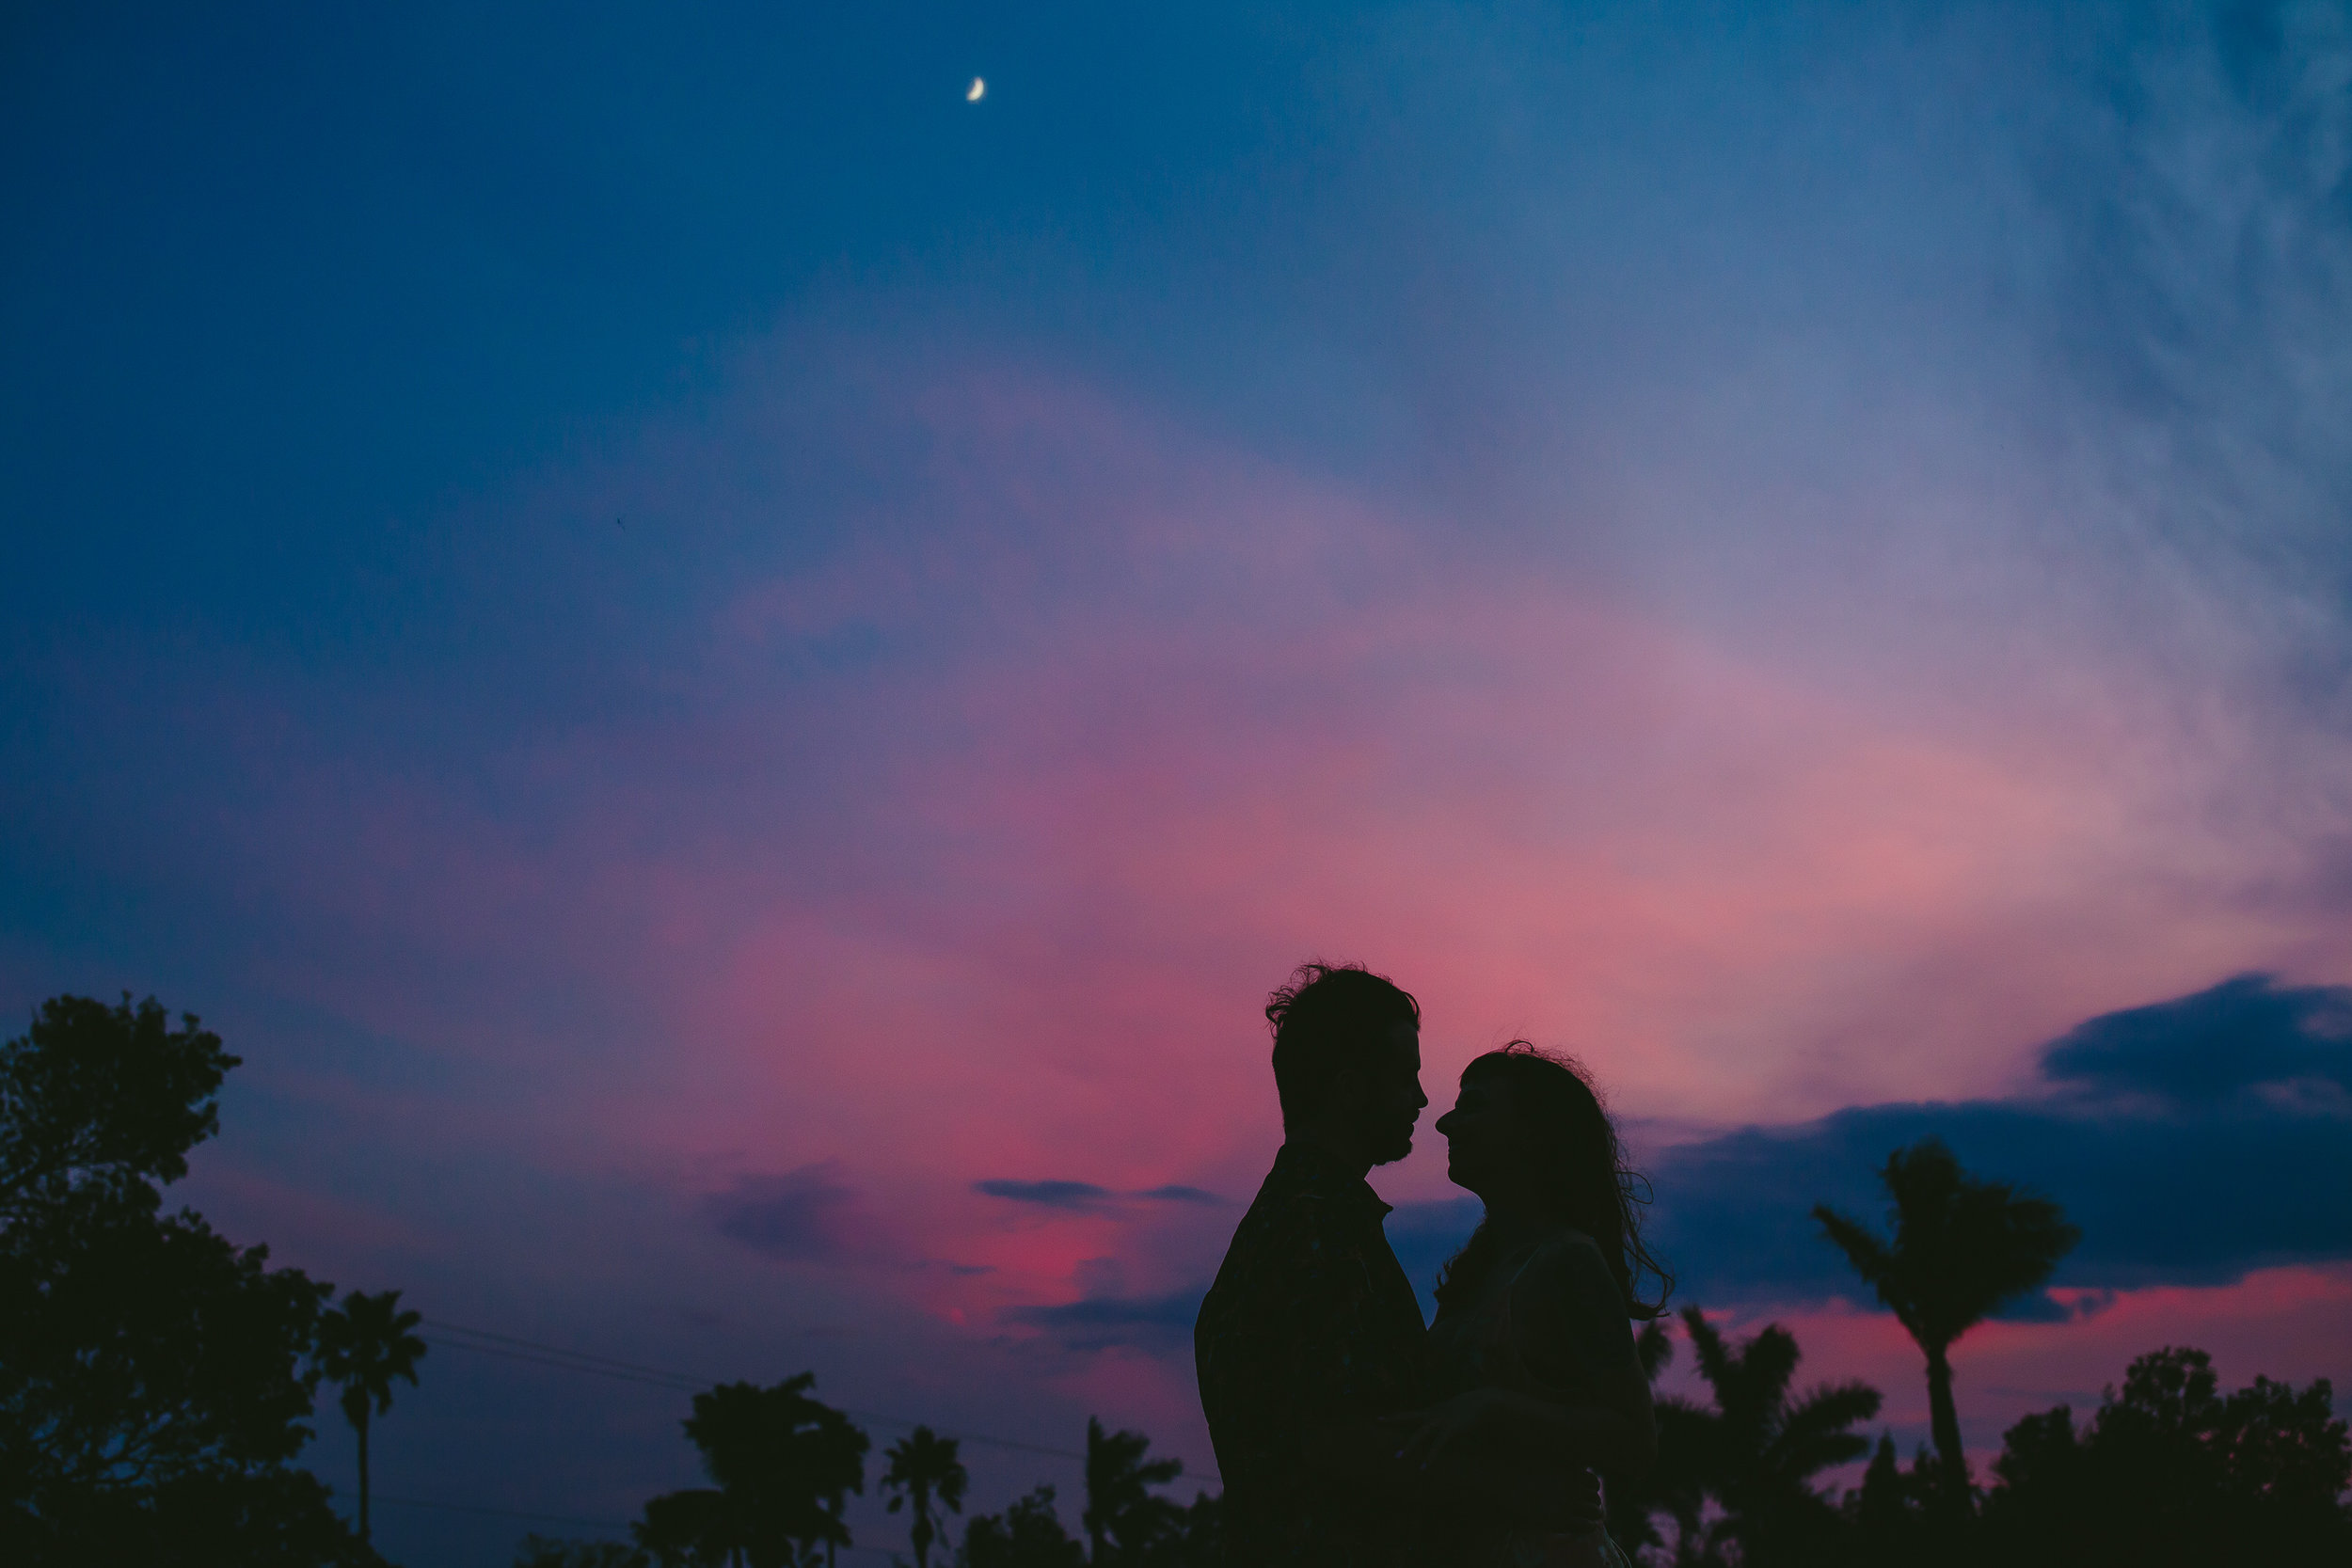 sunset-engagement-portraits-beautiful-sky-tiny-house-photo-sillouhette.jpg